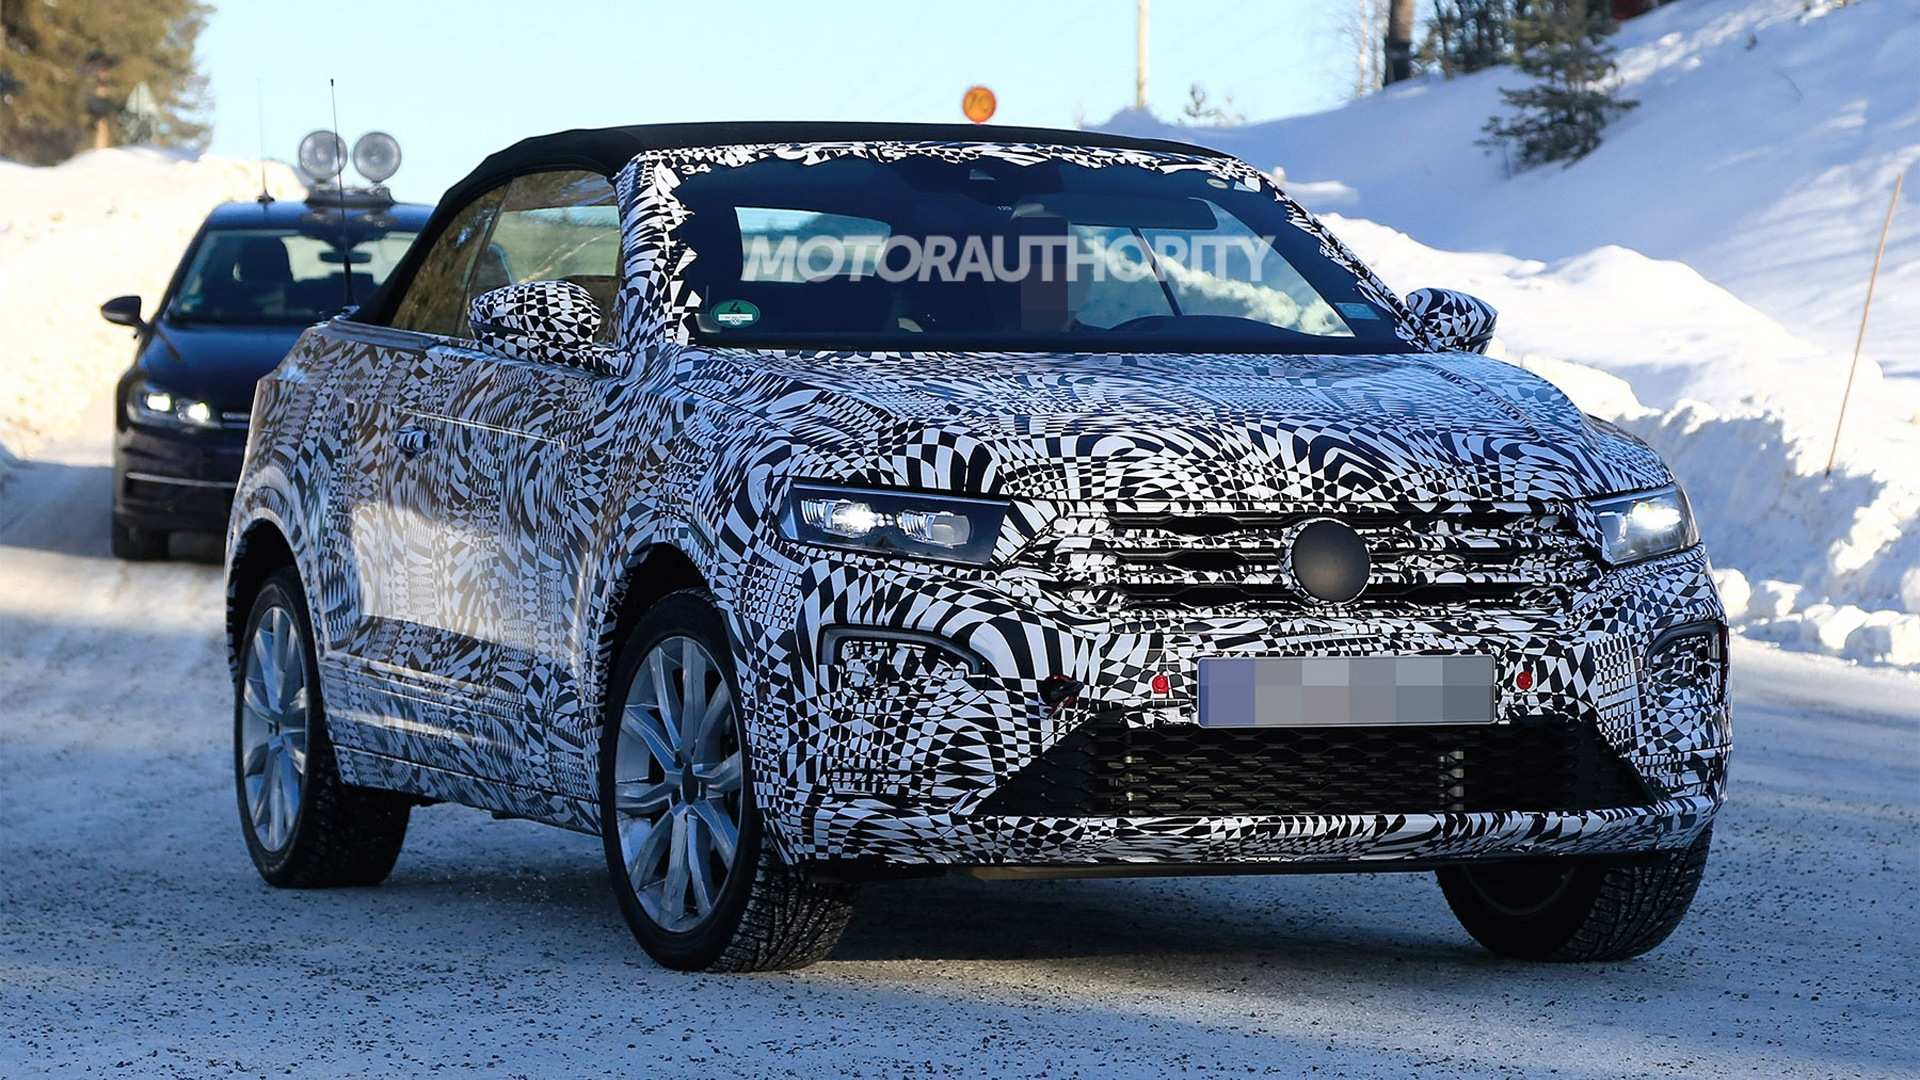 67 New Volkswagen T Roc Cabrio 2020 Interior with Volkswagen T Roc Cabrio 2020